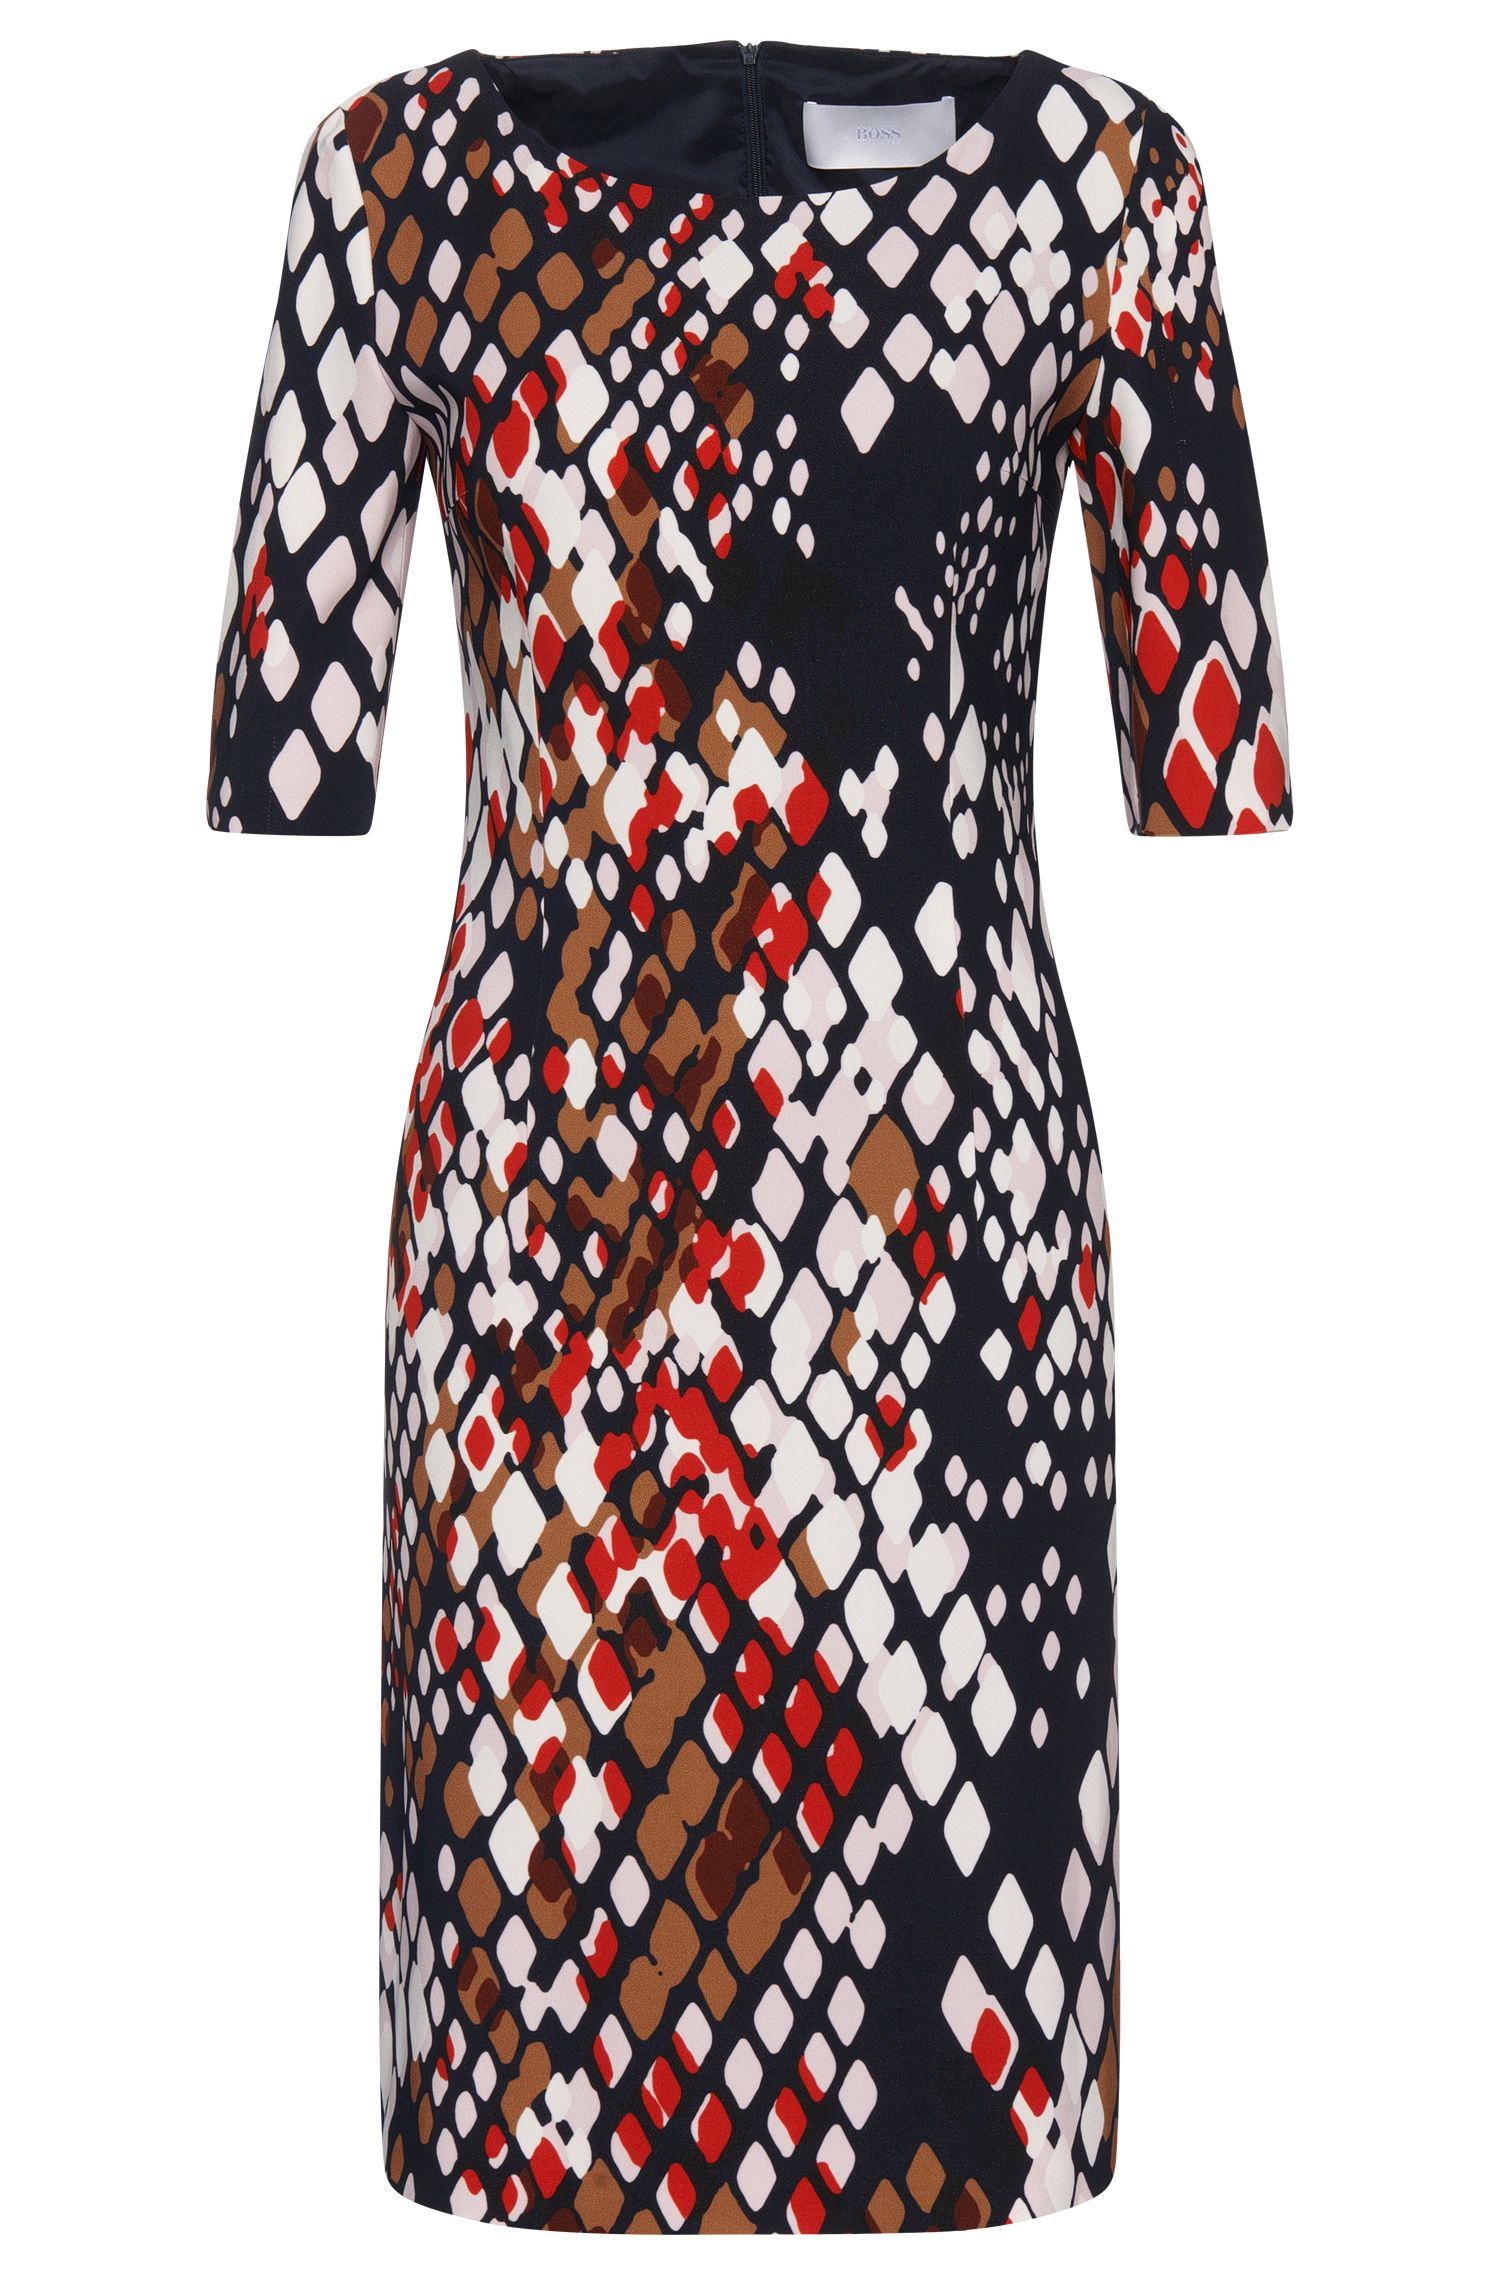 Patterned dress in stretch viscose: 'Dinormi2'